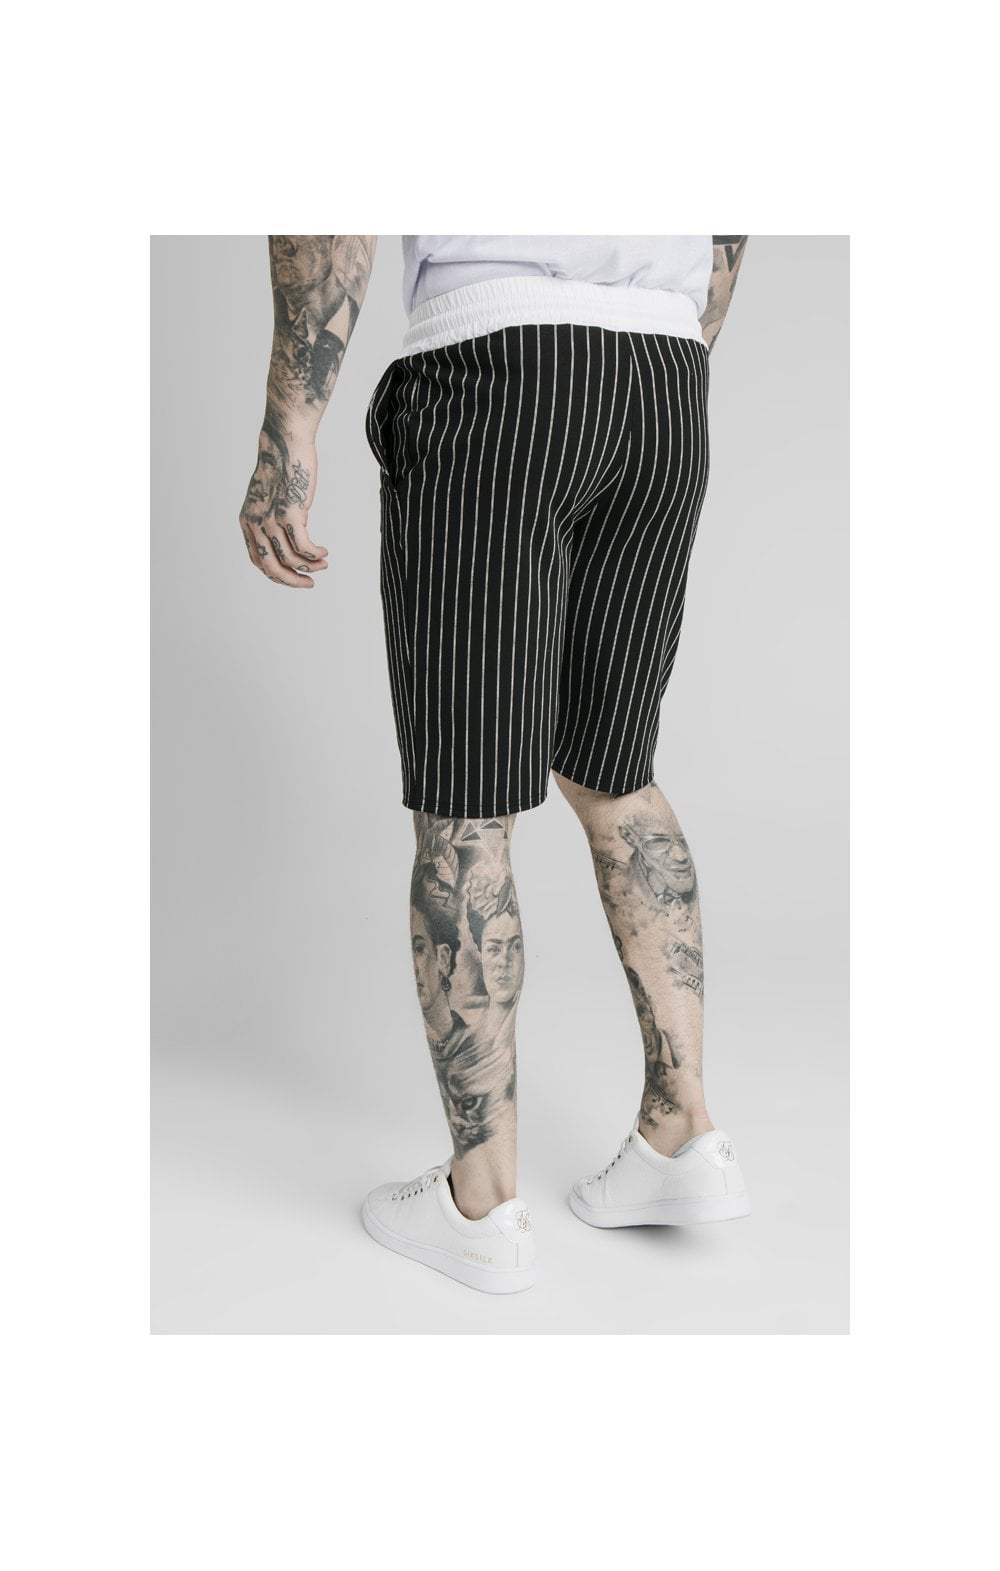 SikSilk Chino Elasticated Long Shorts - Black & White (3)